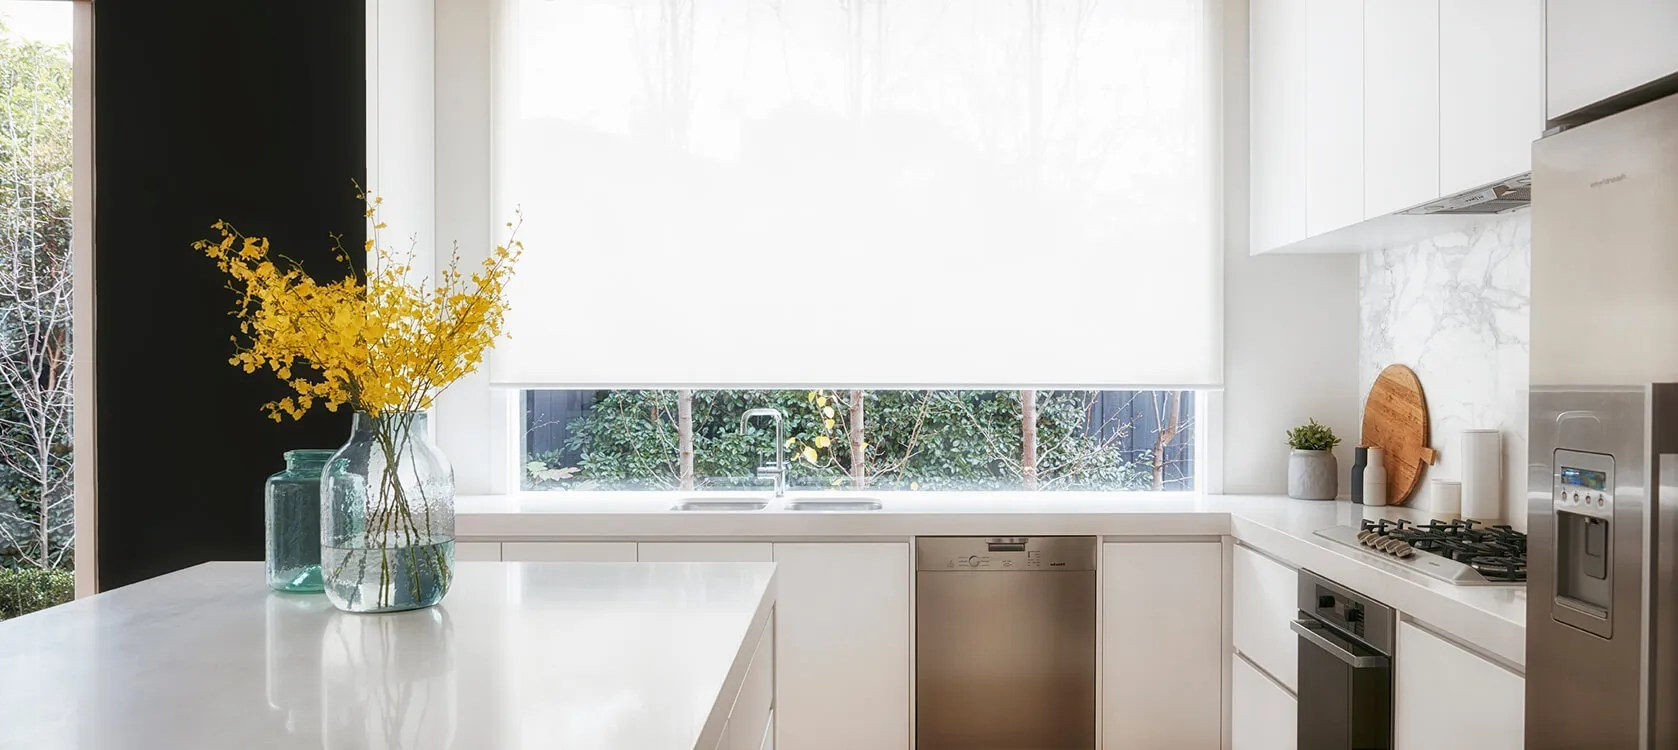 Cheap Roller Blinds Melbourne Blinds Shutters At Carpet Court Extensive Range Affordable Prices